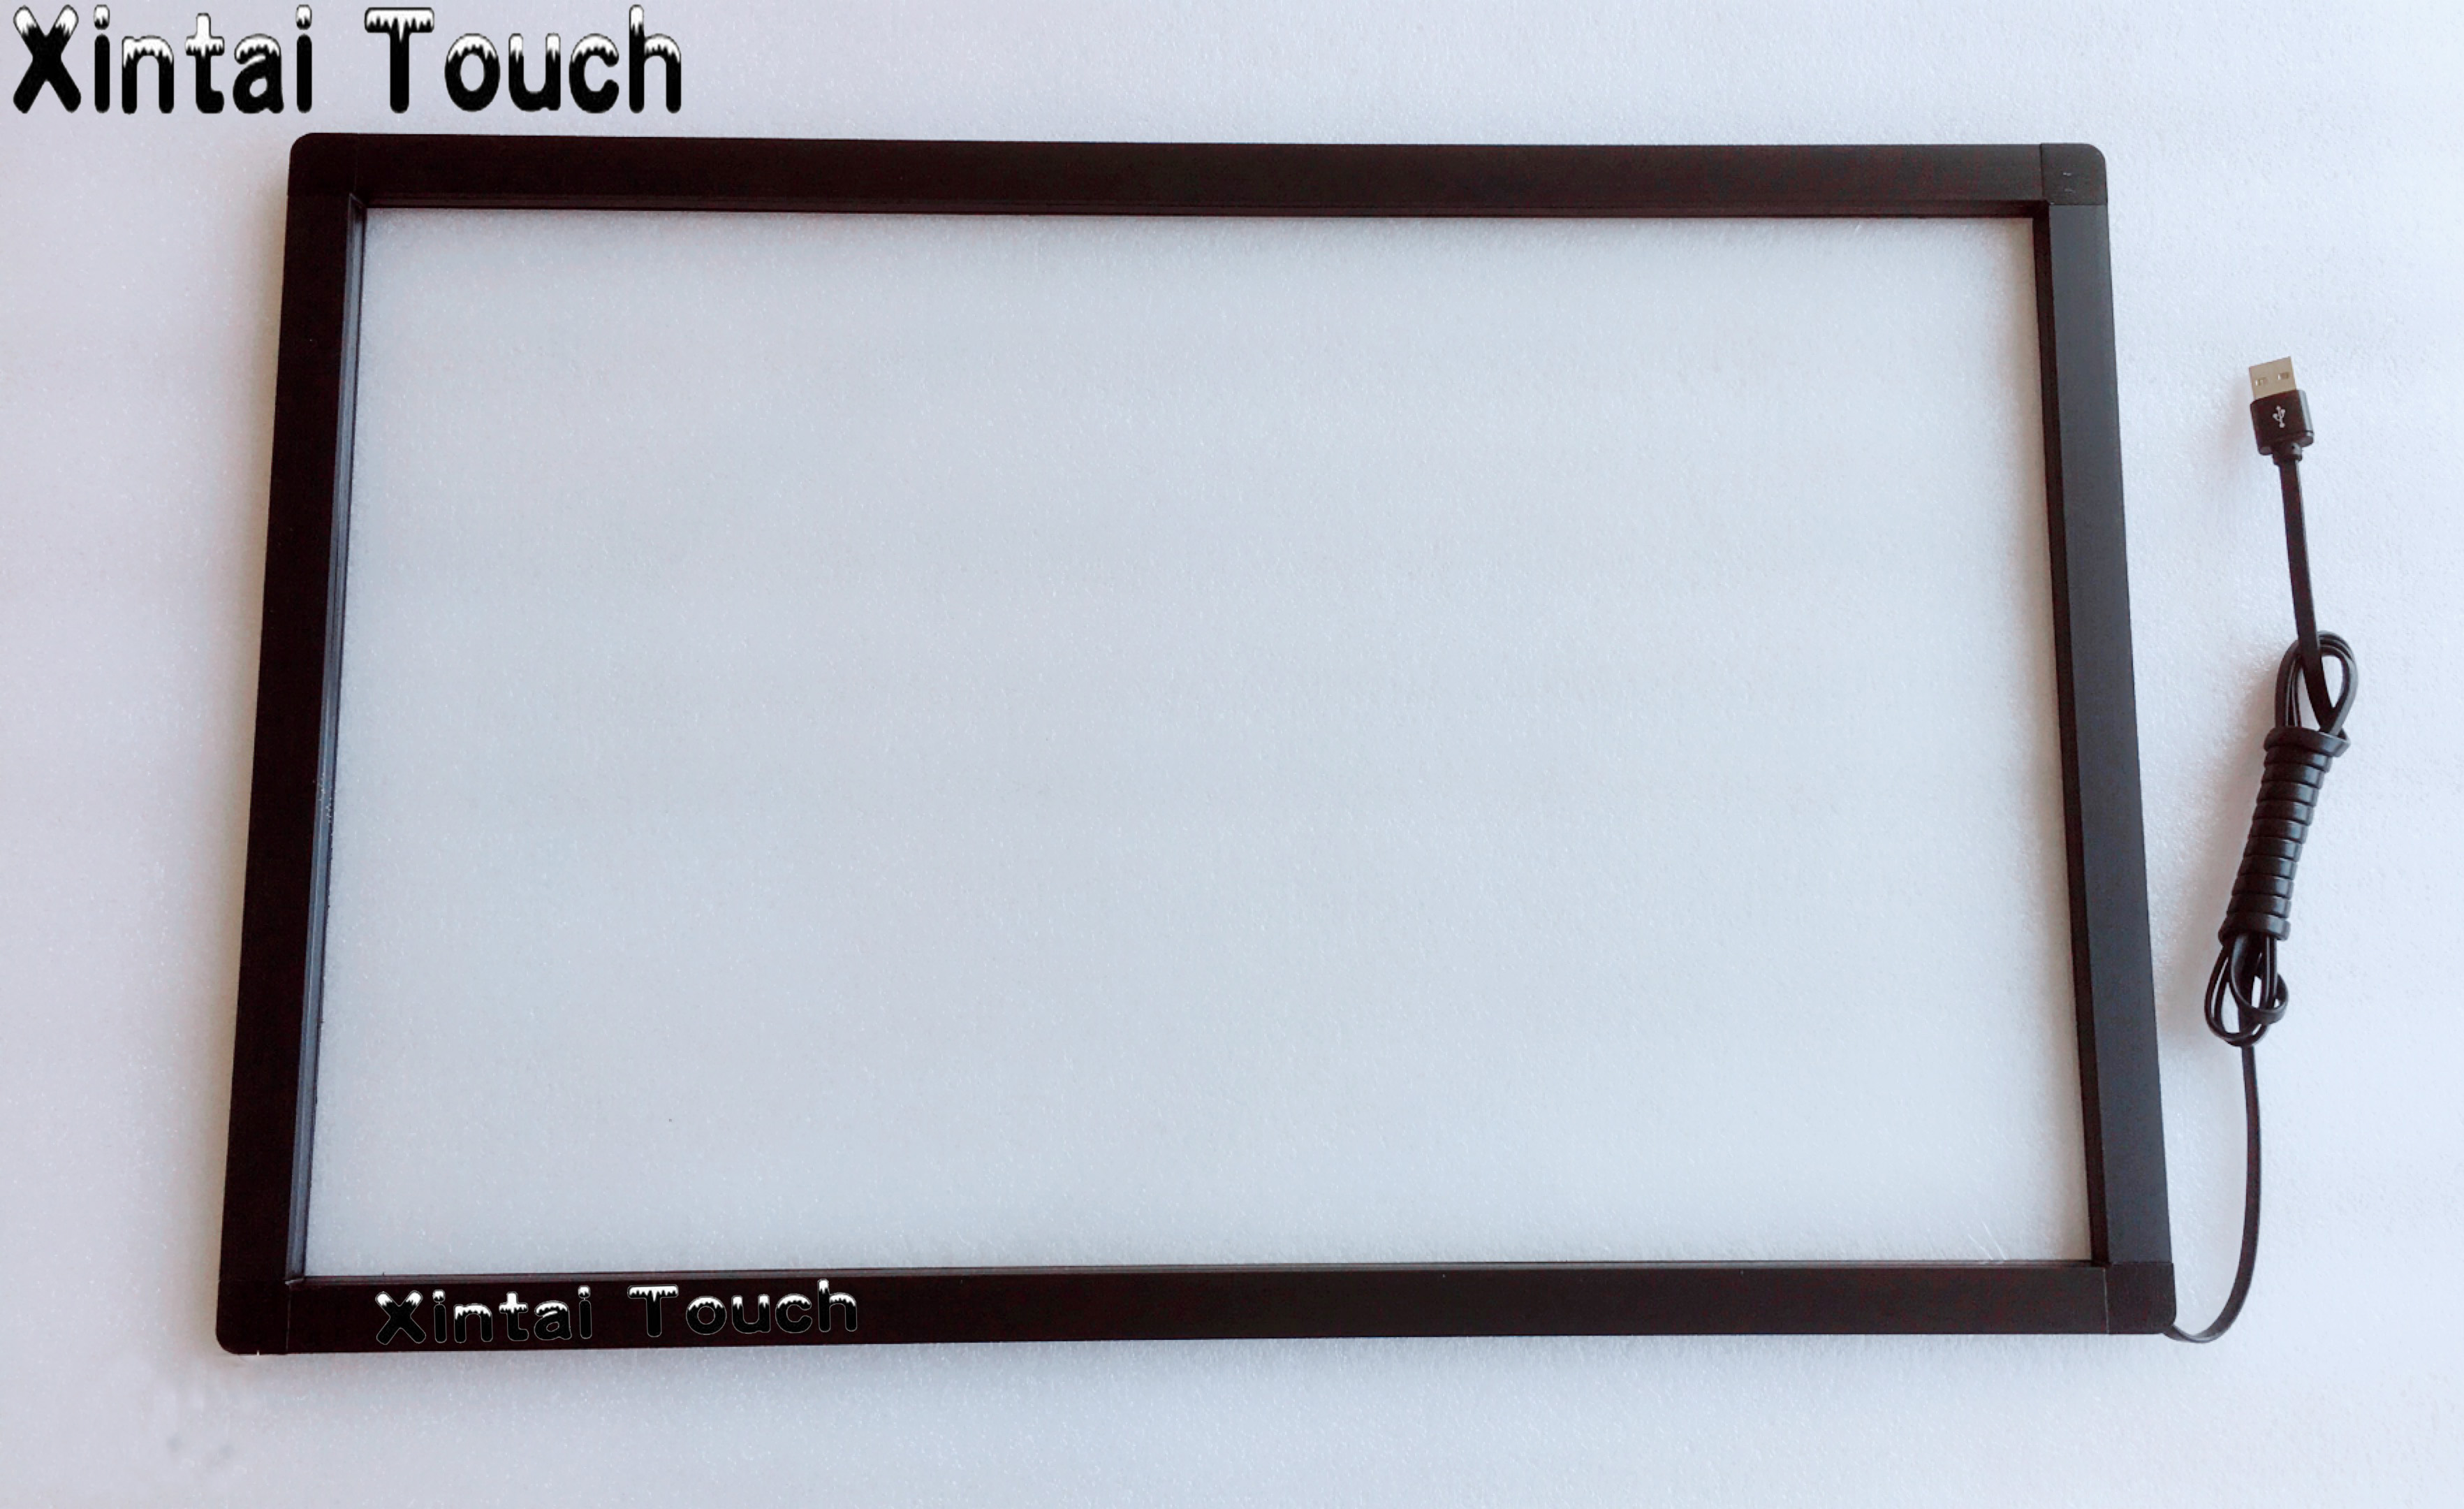 24 inch 2 points Stable Multi IR touch screen overlay kit for touch monitor/kiosk/ interactive display with glass